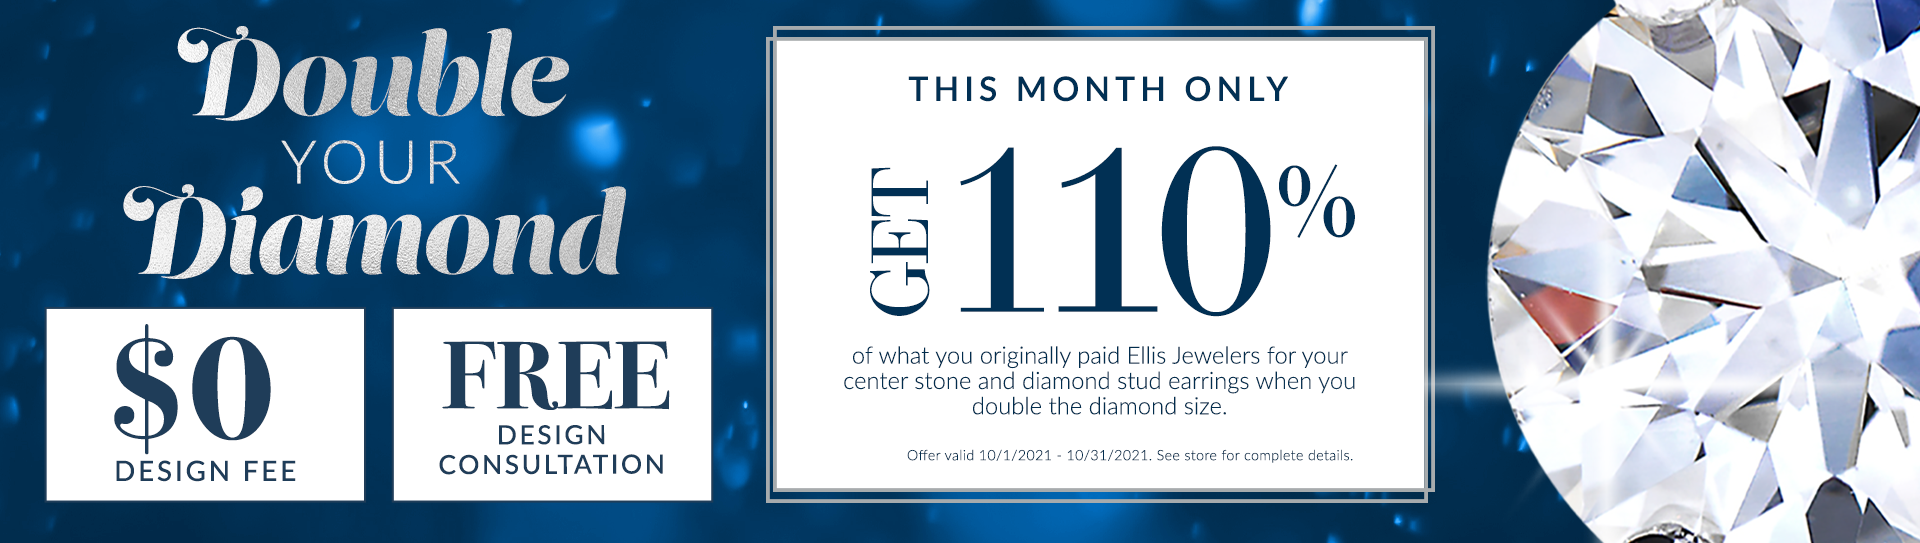 Double your Diamond Month